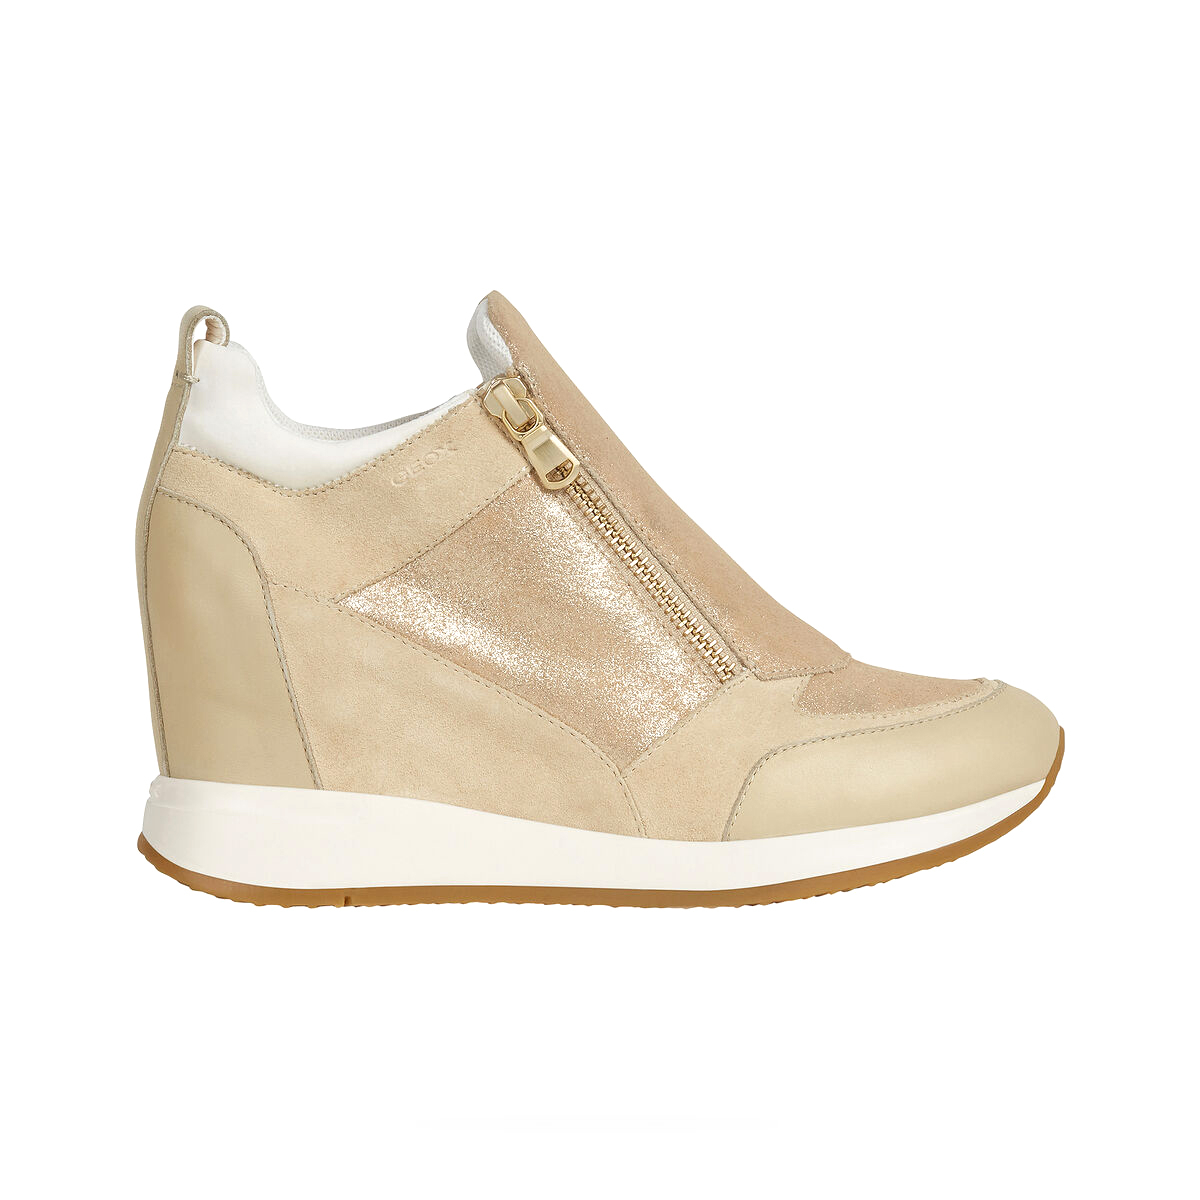 D Nydame sneaker